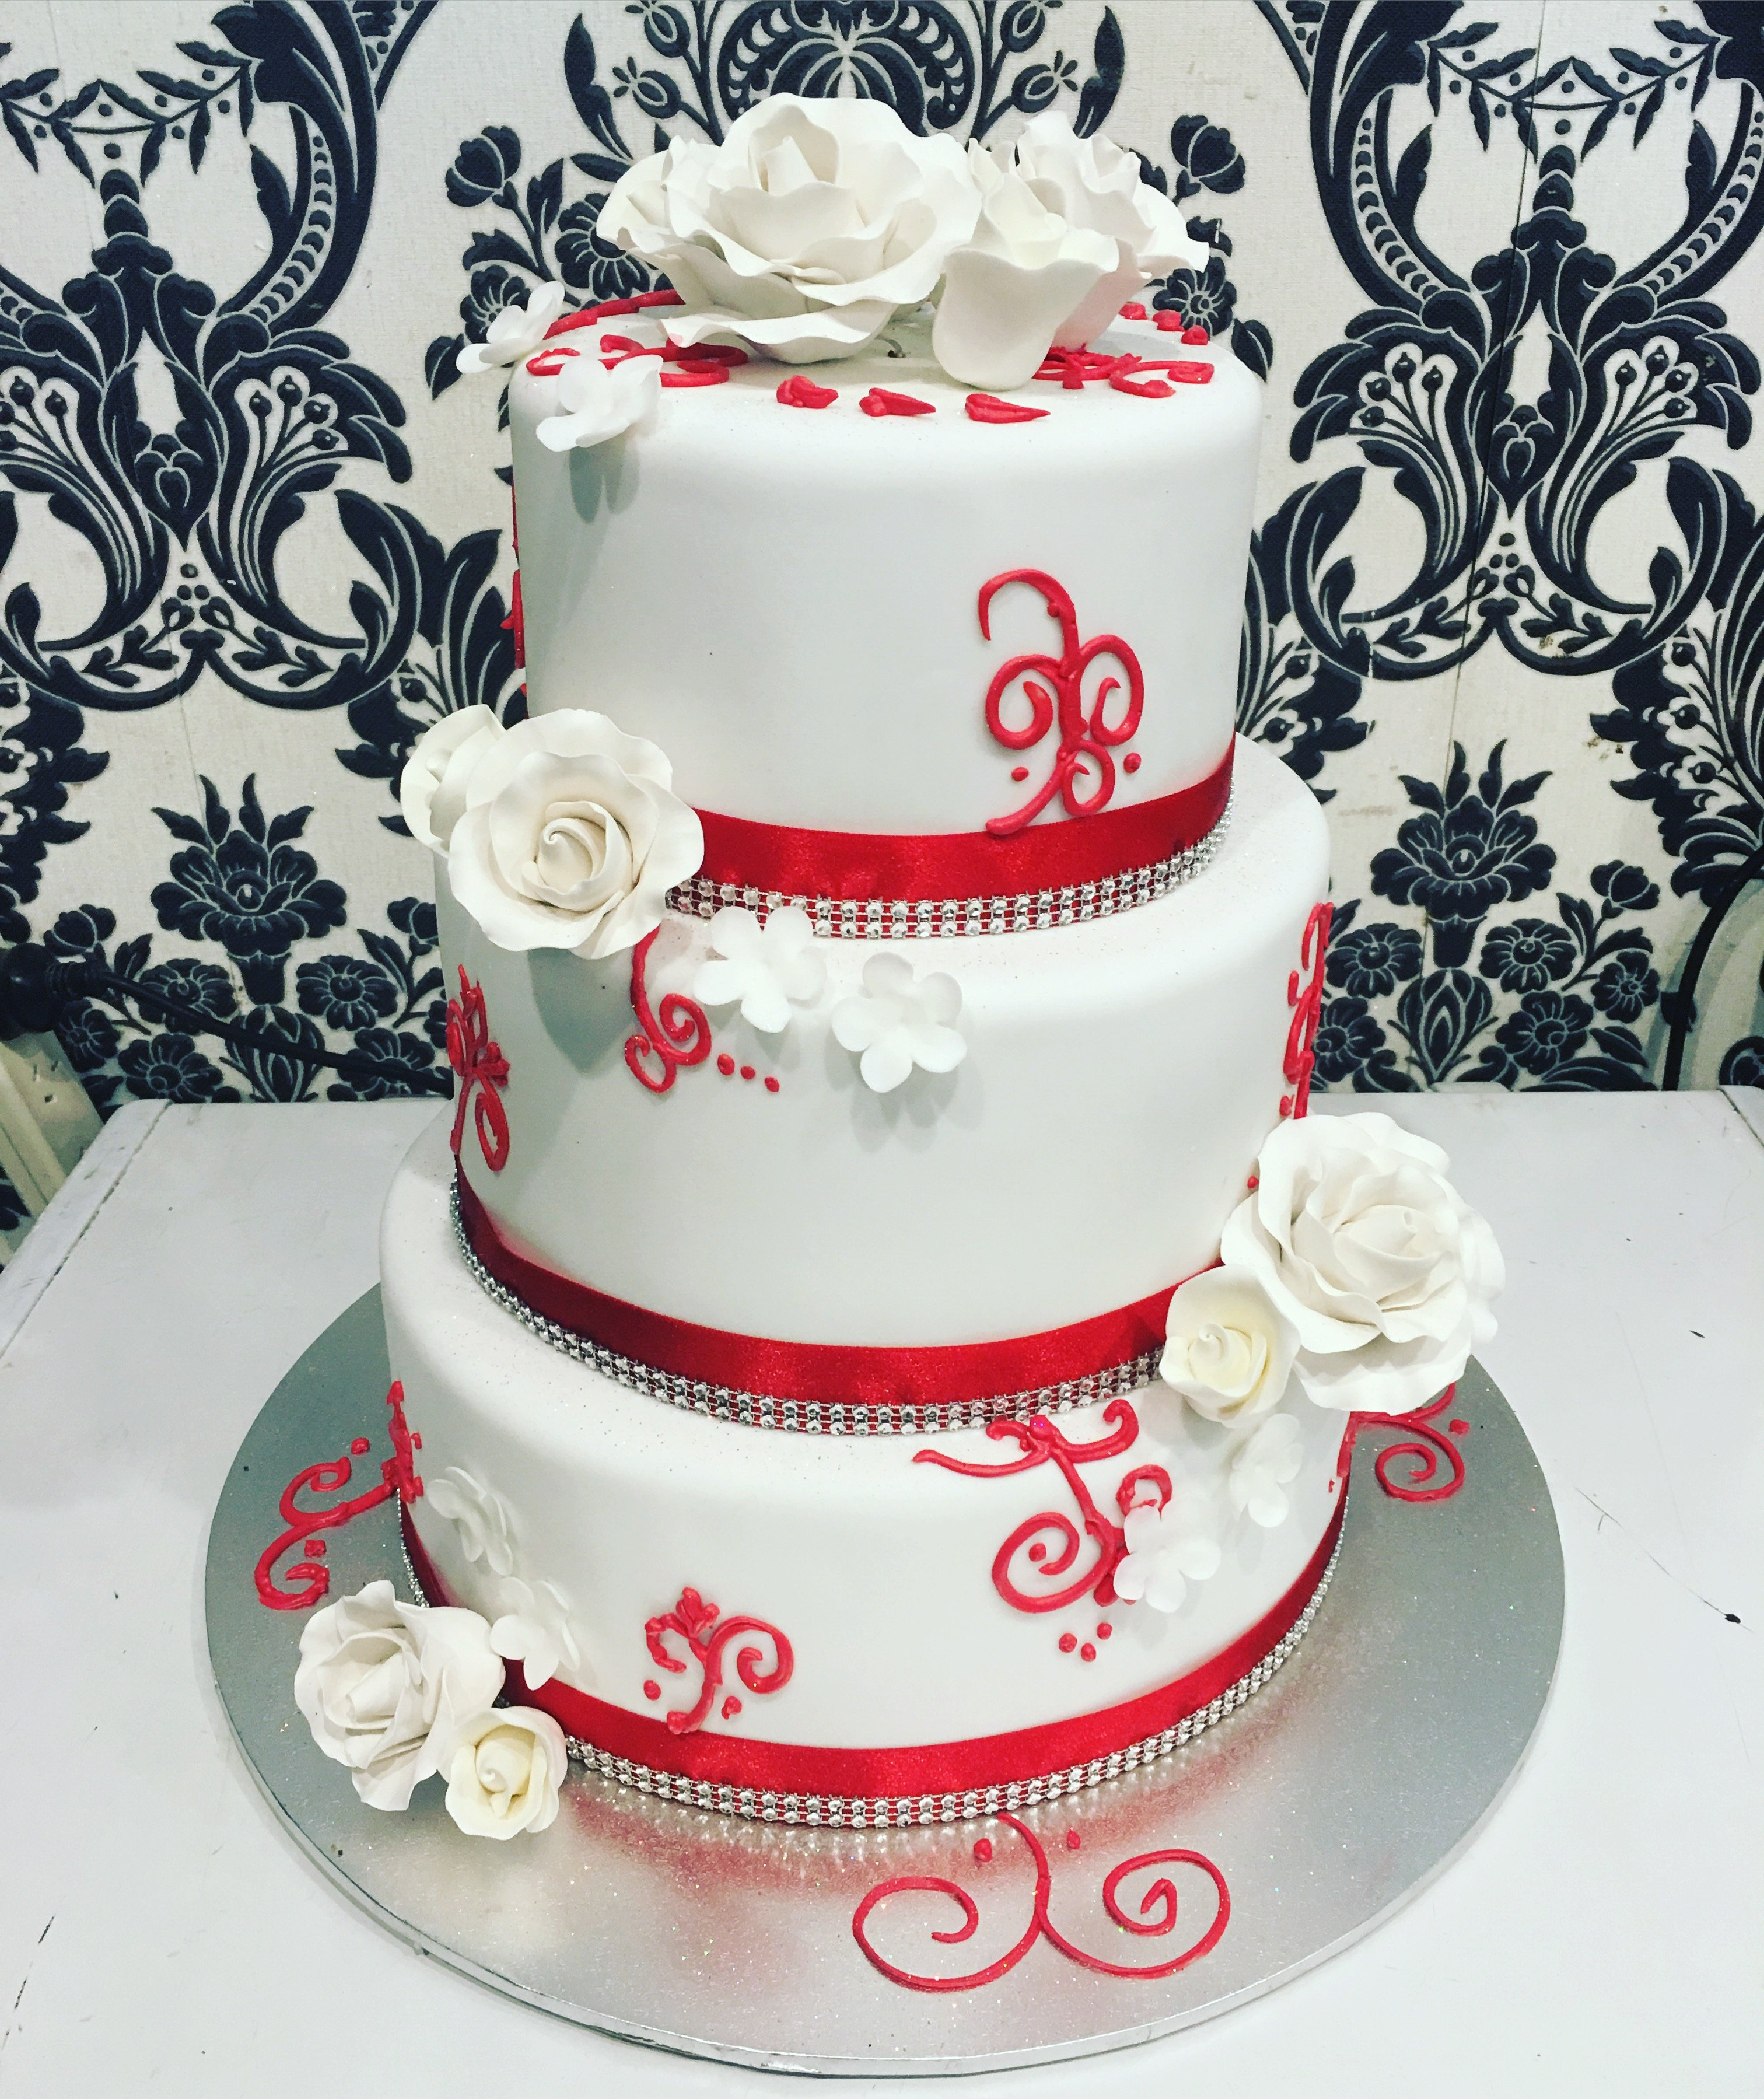 white triple layer cake with red accents and white flowers